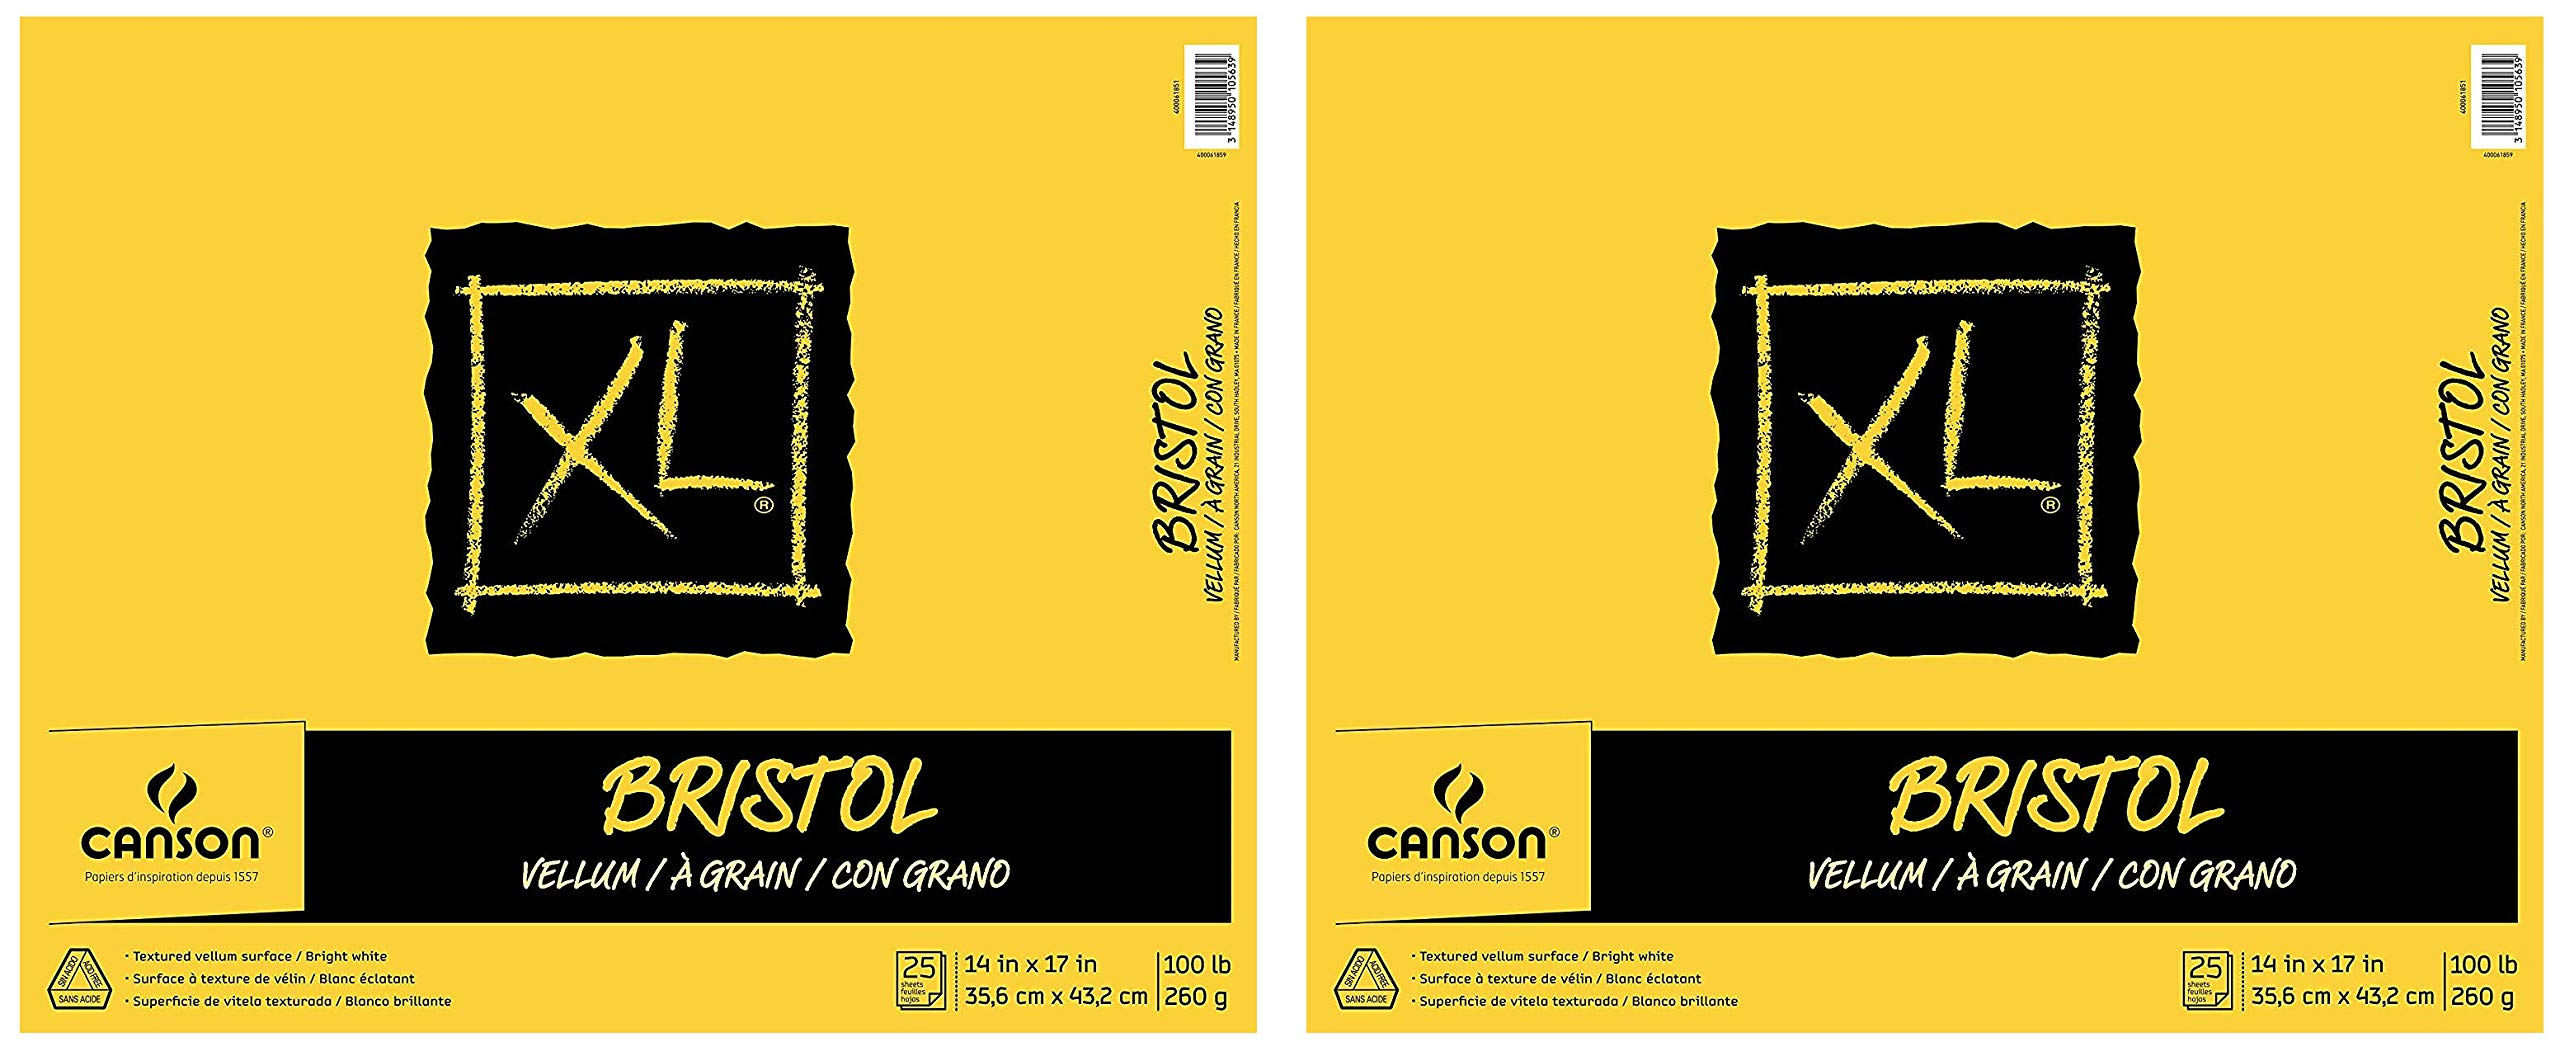 Canson XL Series Bristol Vellum Paper Pad, Heavyweight Paper for Pencil, Vellum Finish, Fold Over, 100 Pound, 14 x 17 Inch, Bright White, 25 Sheets (Twо Pаck)